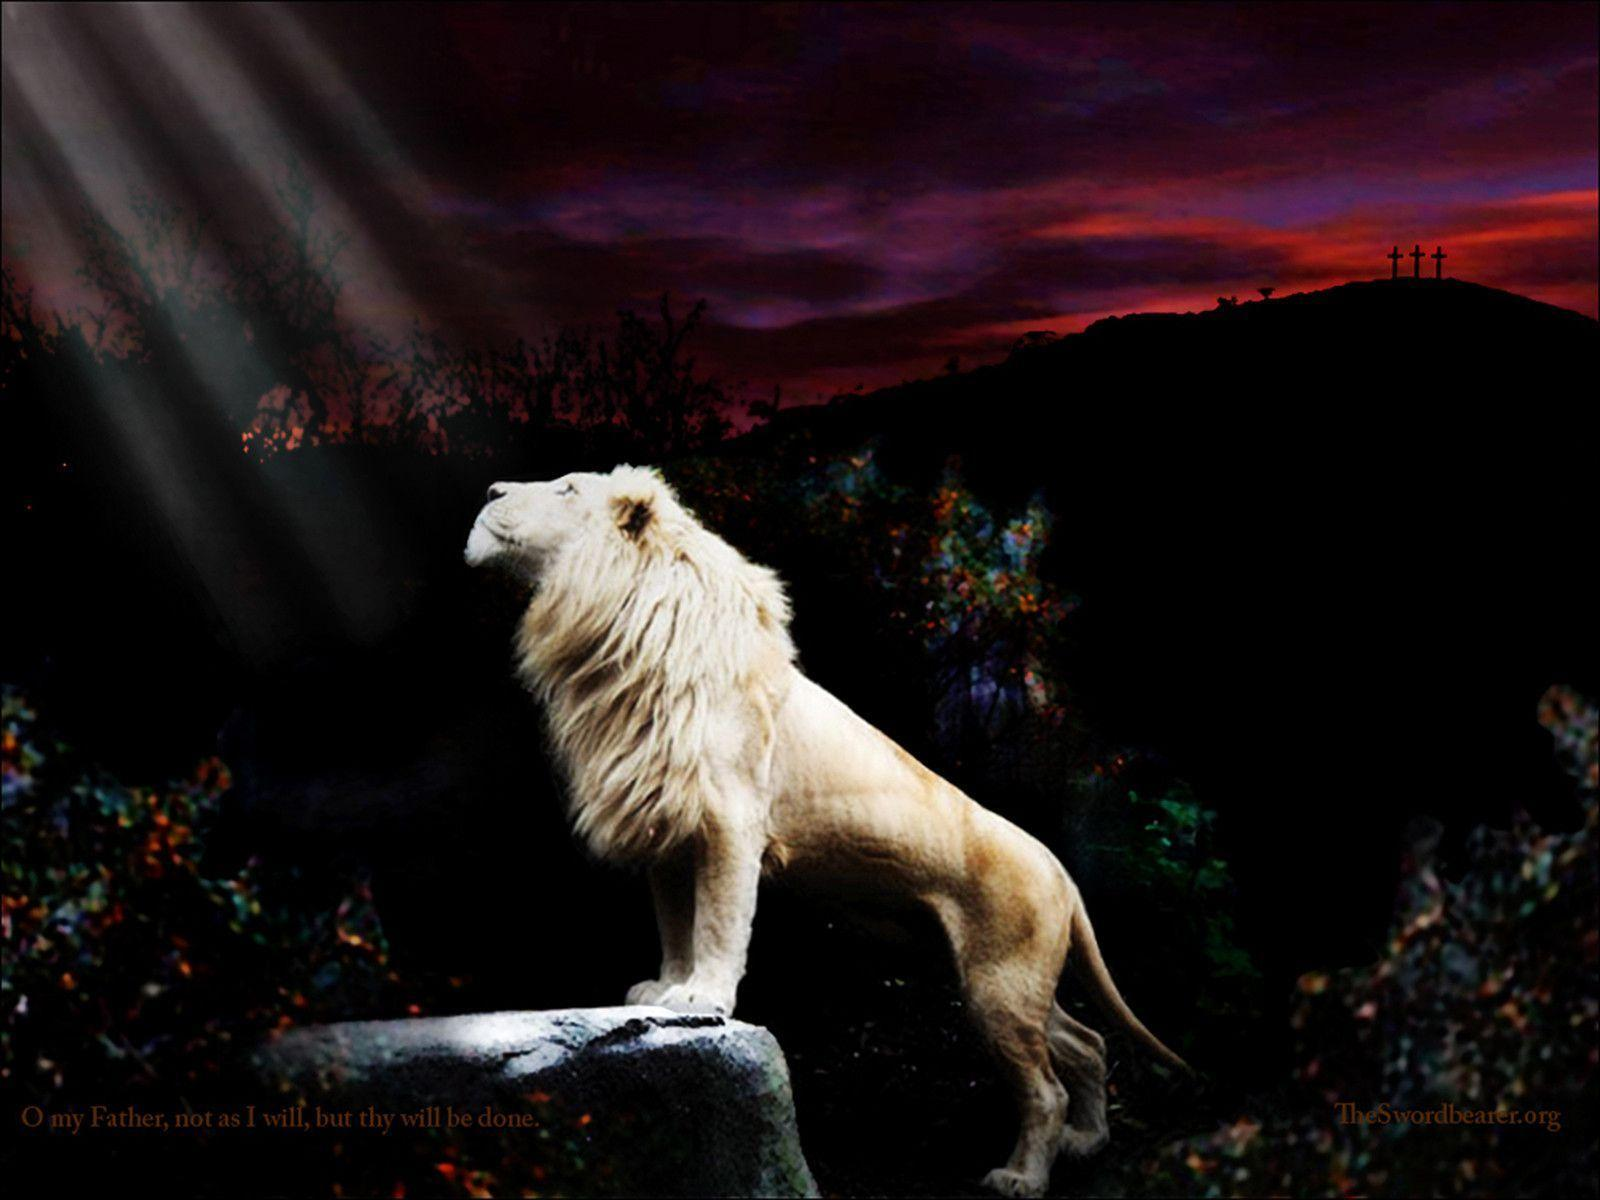 Wallpaper: The Lion of the tribe of Judah in Gethsemane with